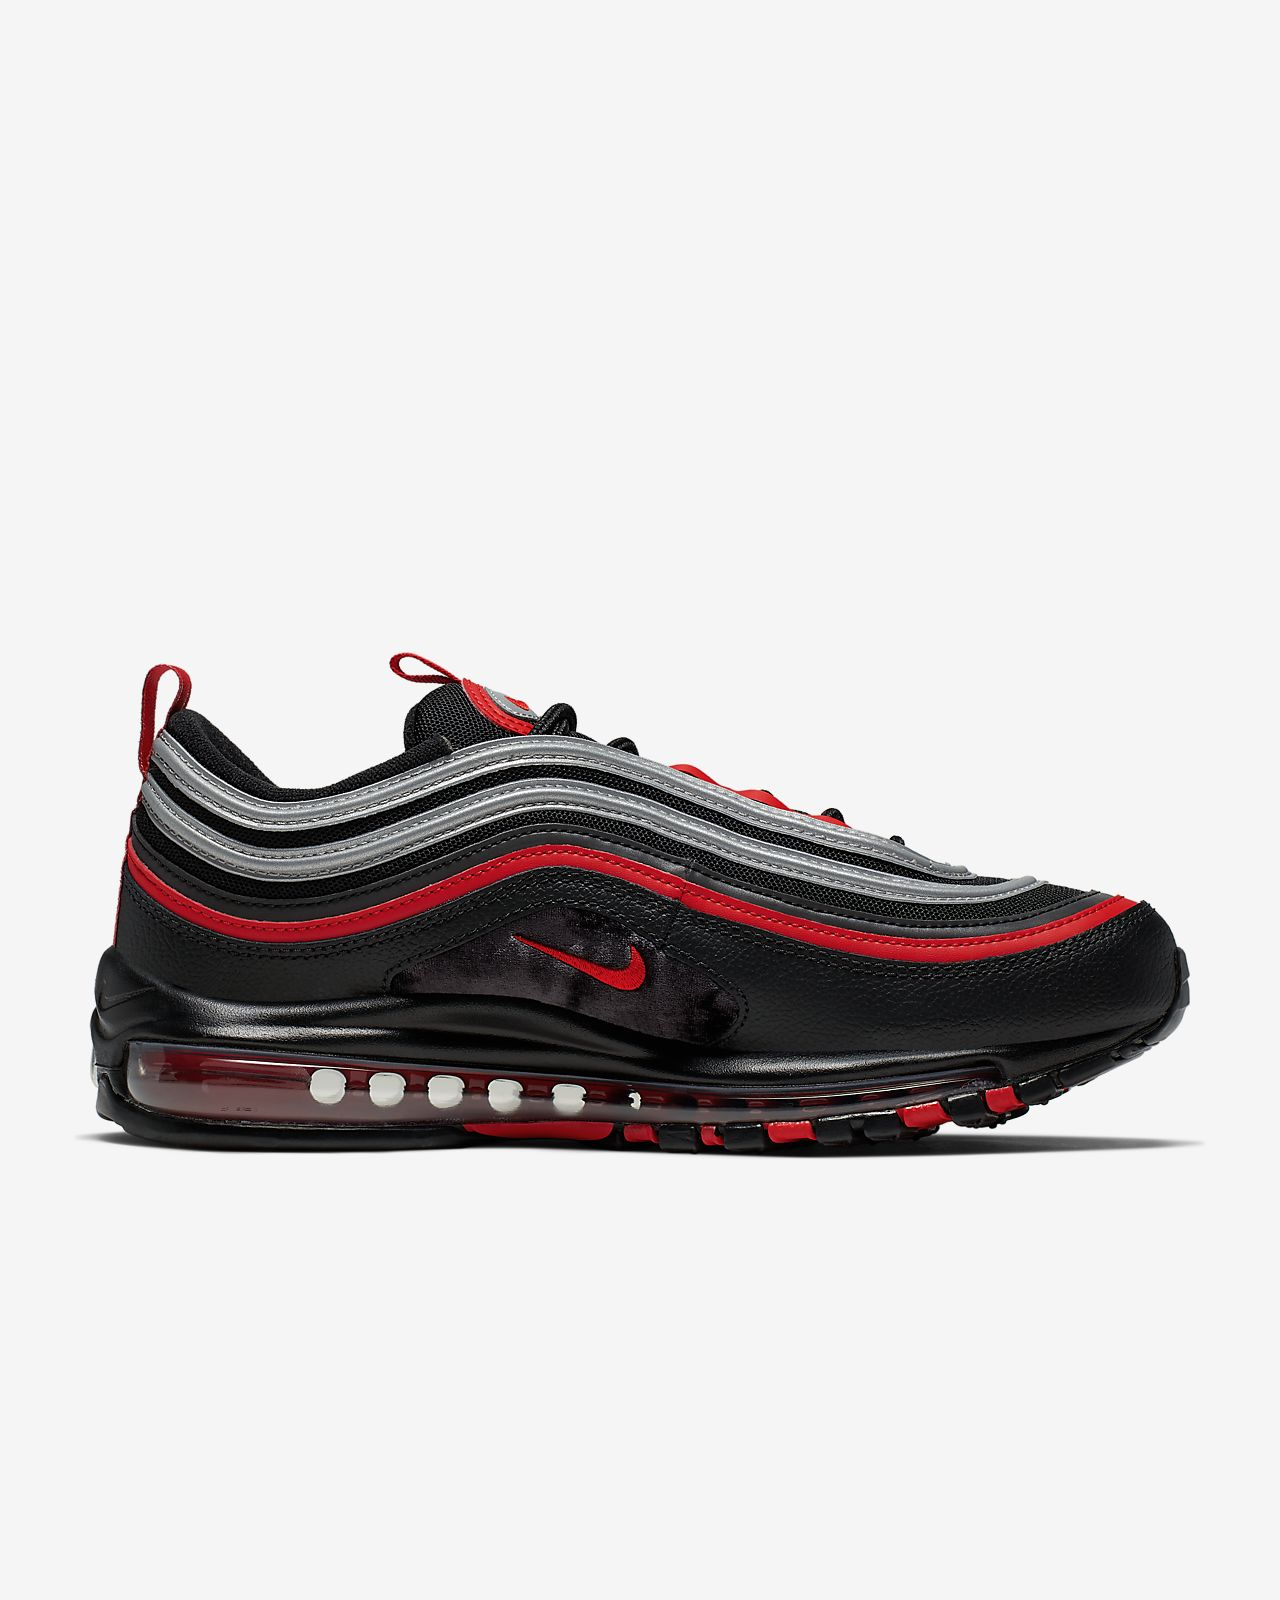 Nike air max 97 white volt black red shoes. in 2019 Nike air max